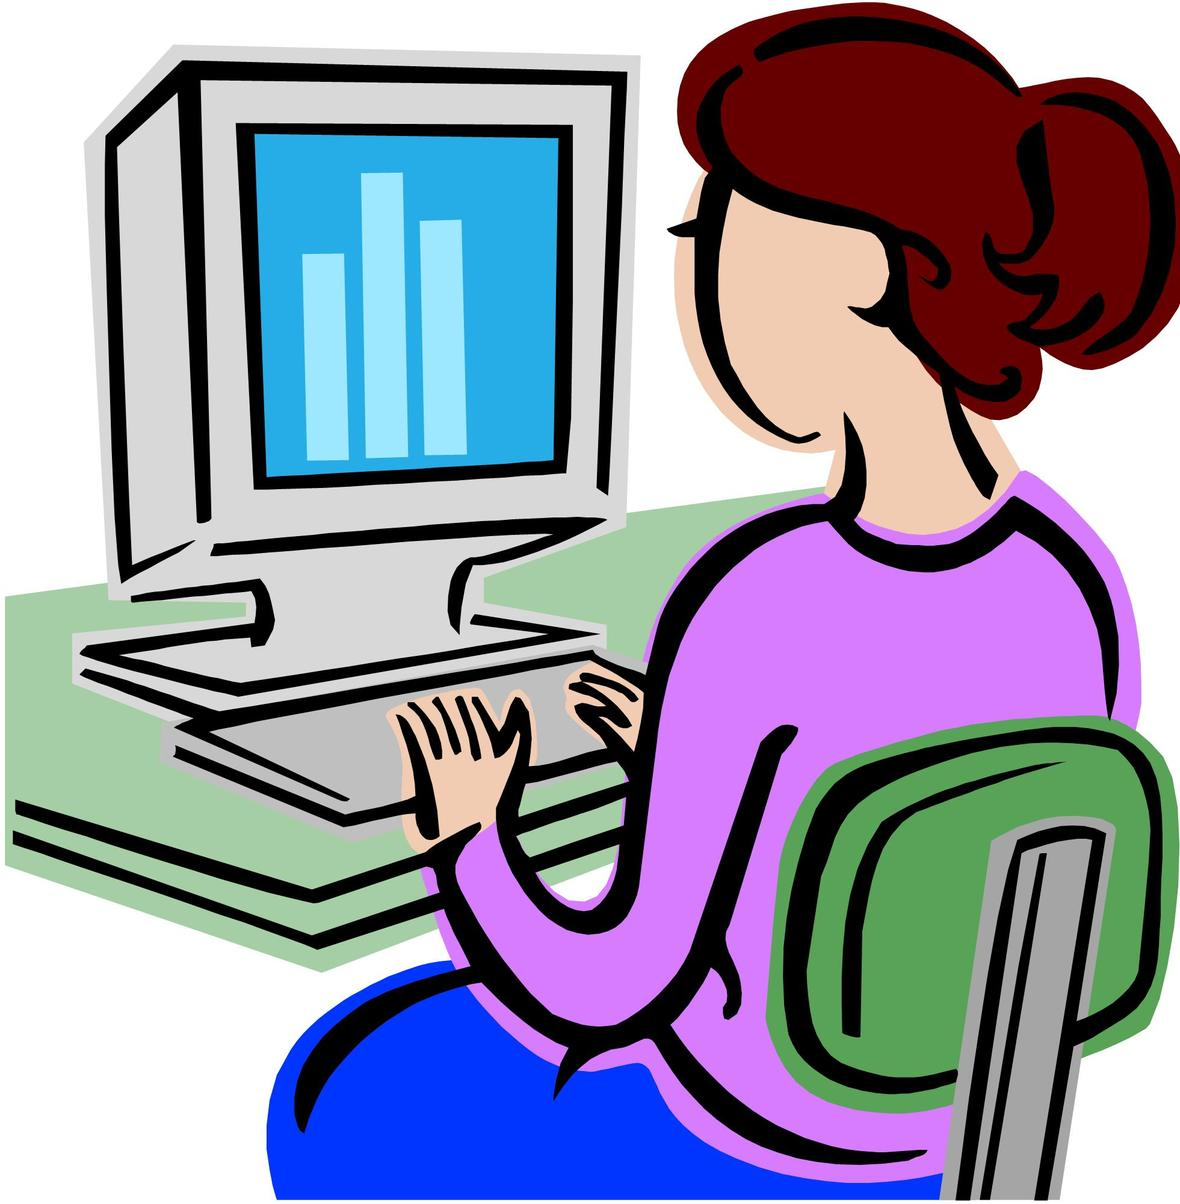 lady-on-computer-clipart-1